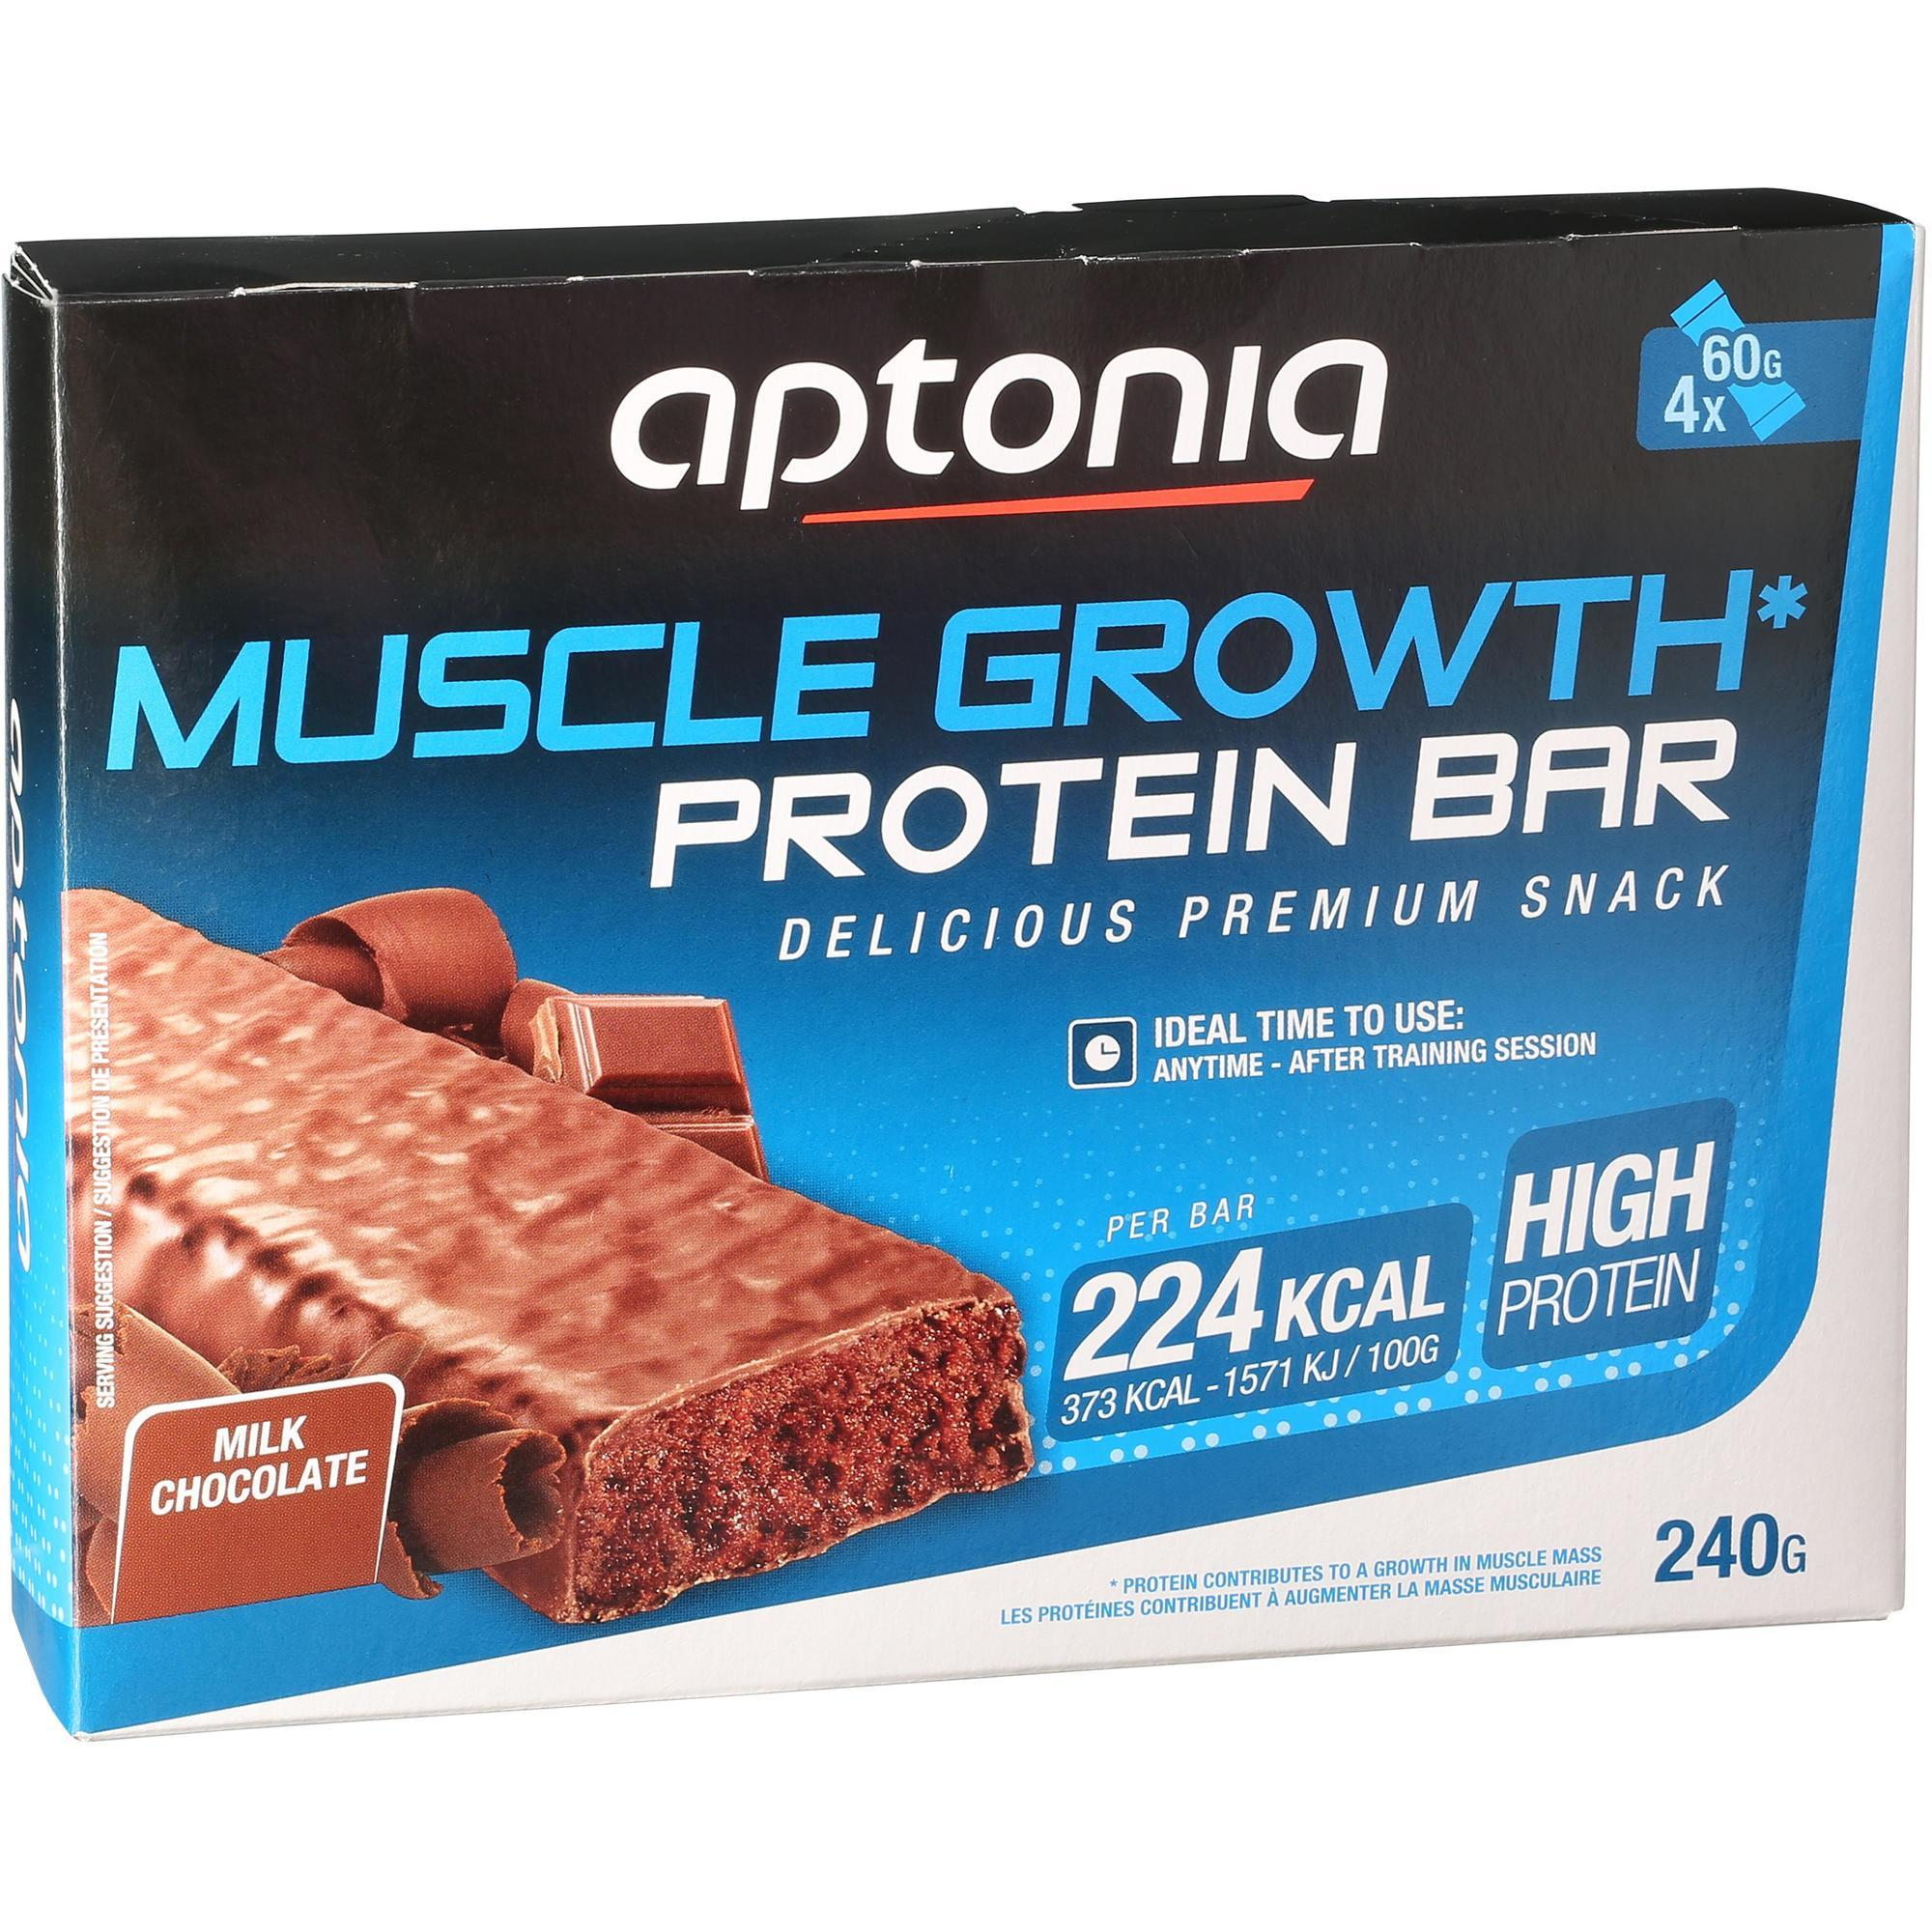 Barre de prot ines muscle growth chocolat 4x60g aptonia - Chaufferette main decathlon ...